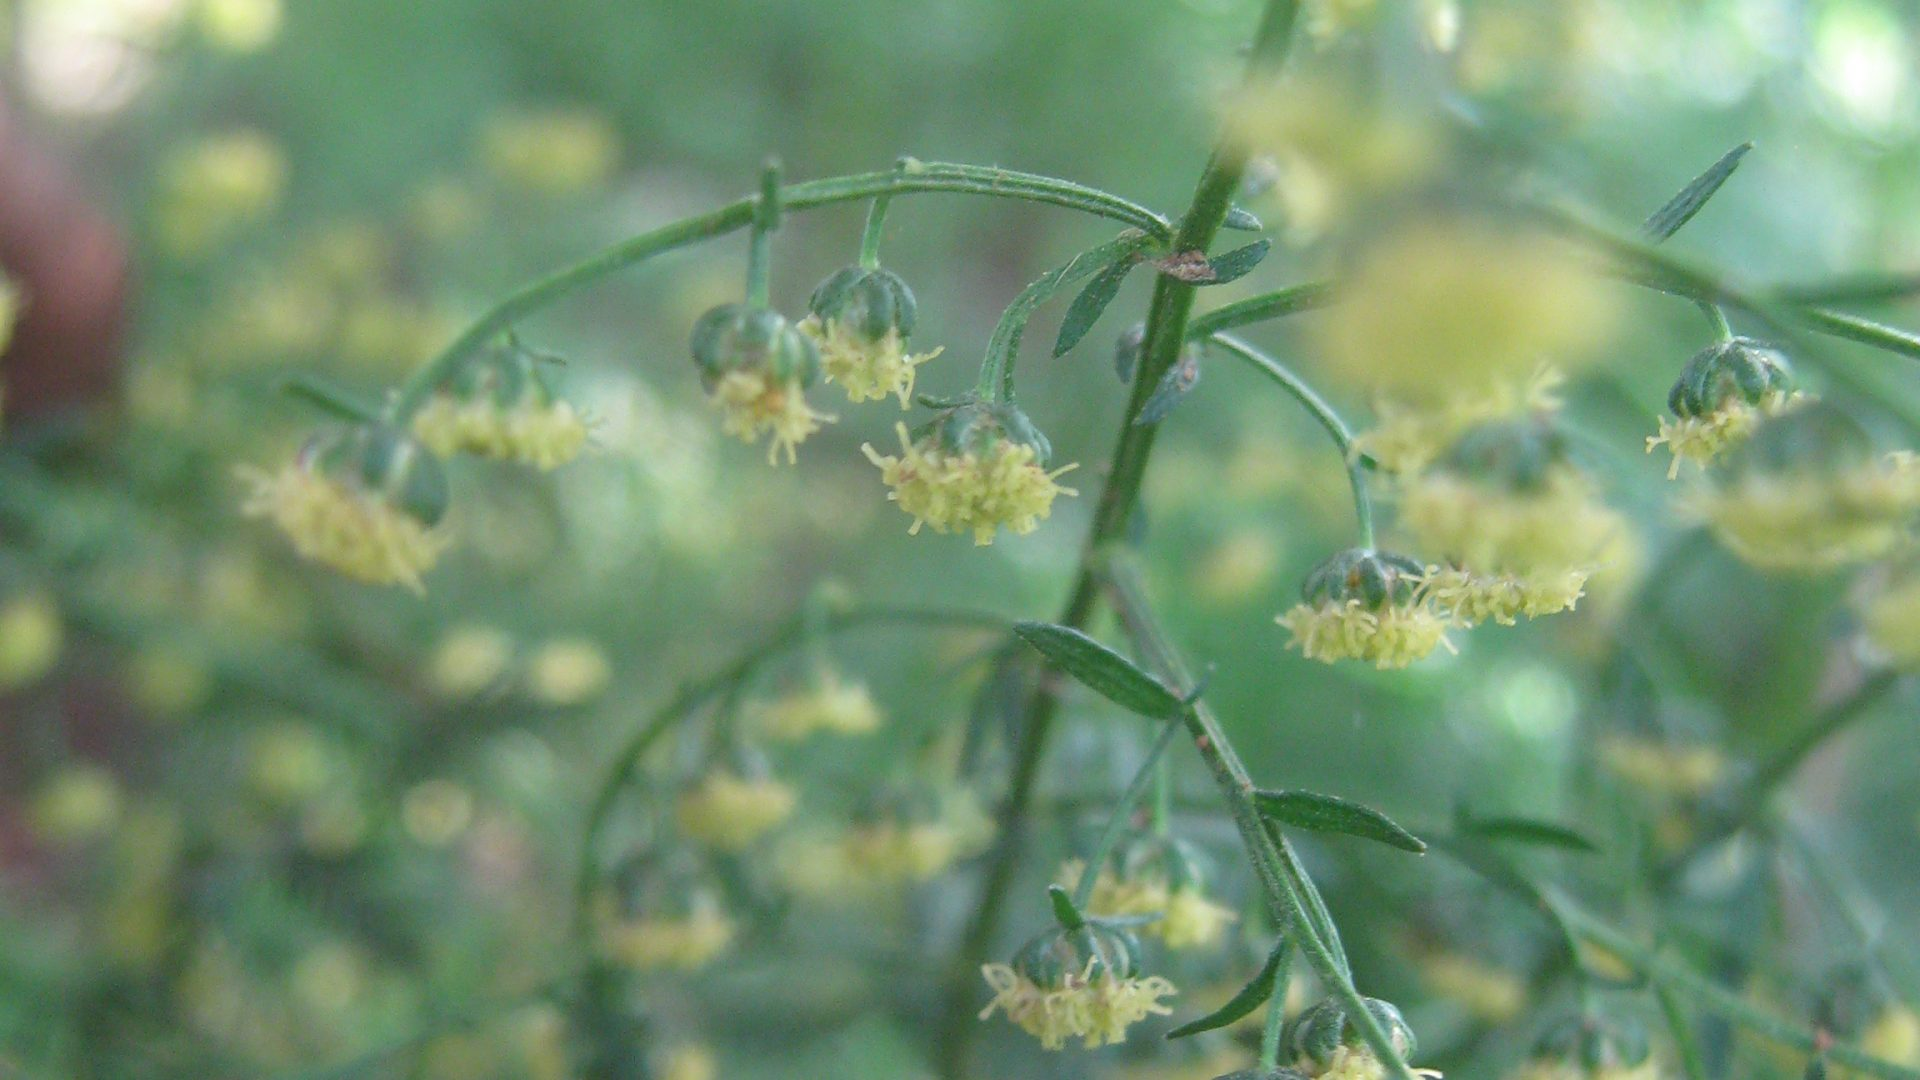 49. Improving the quality of education with Artemisia annua in schools